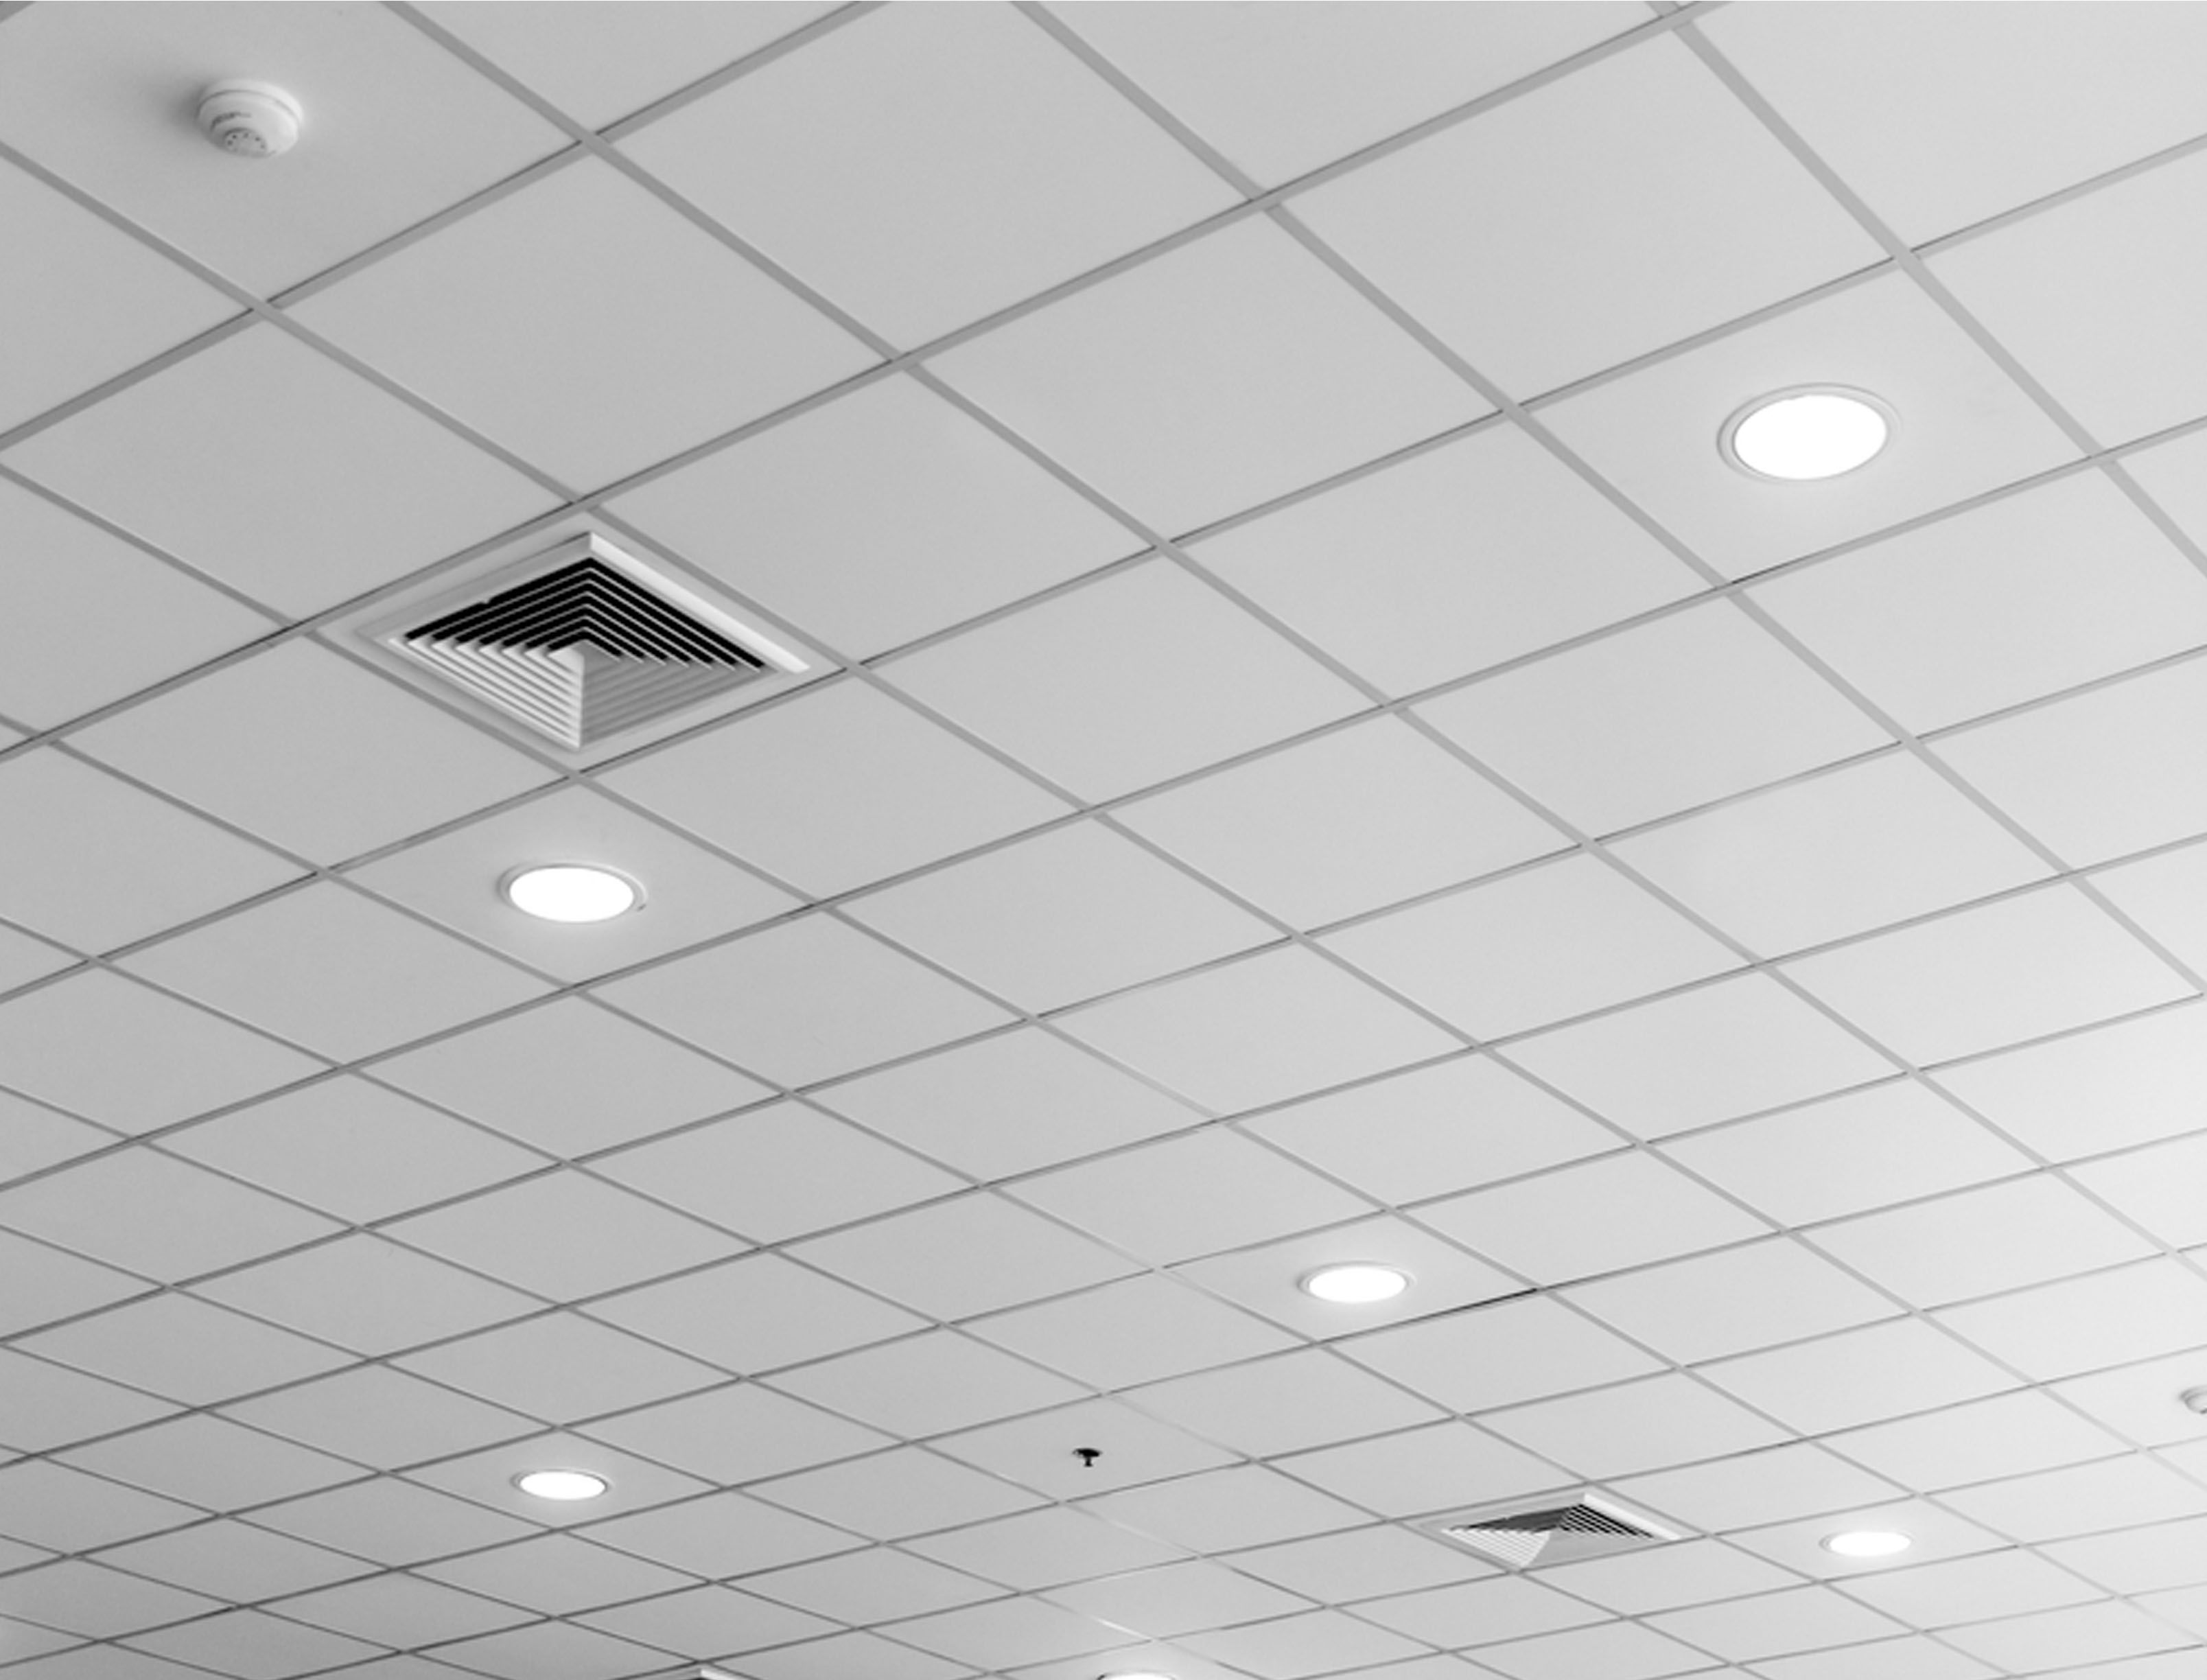 Grid ceiling tiles sizes httpcreativechairsandtables grid ceiling tiles sizes dailygadgetfo Choice Image